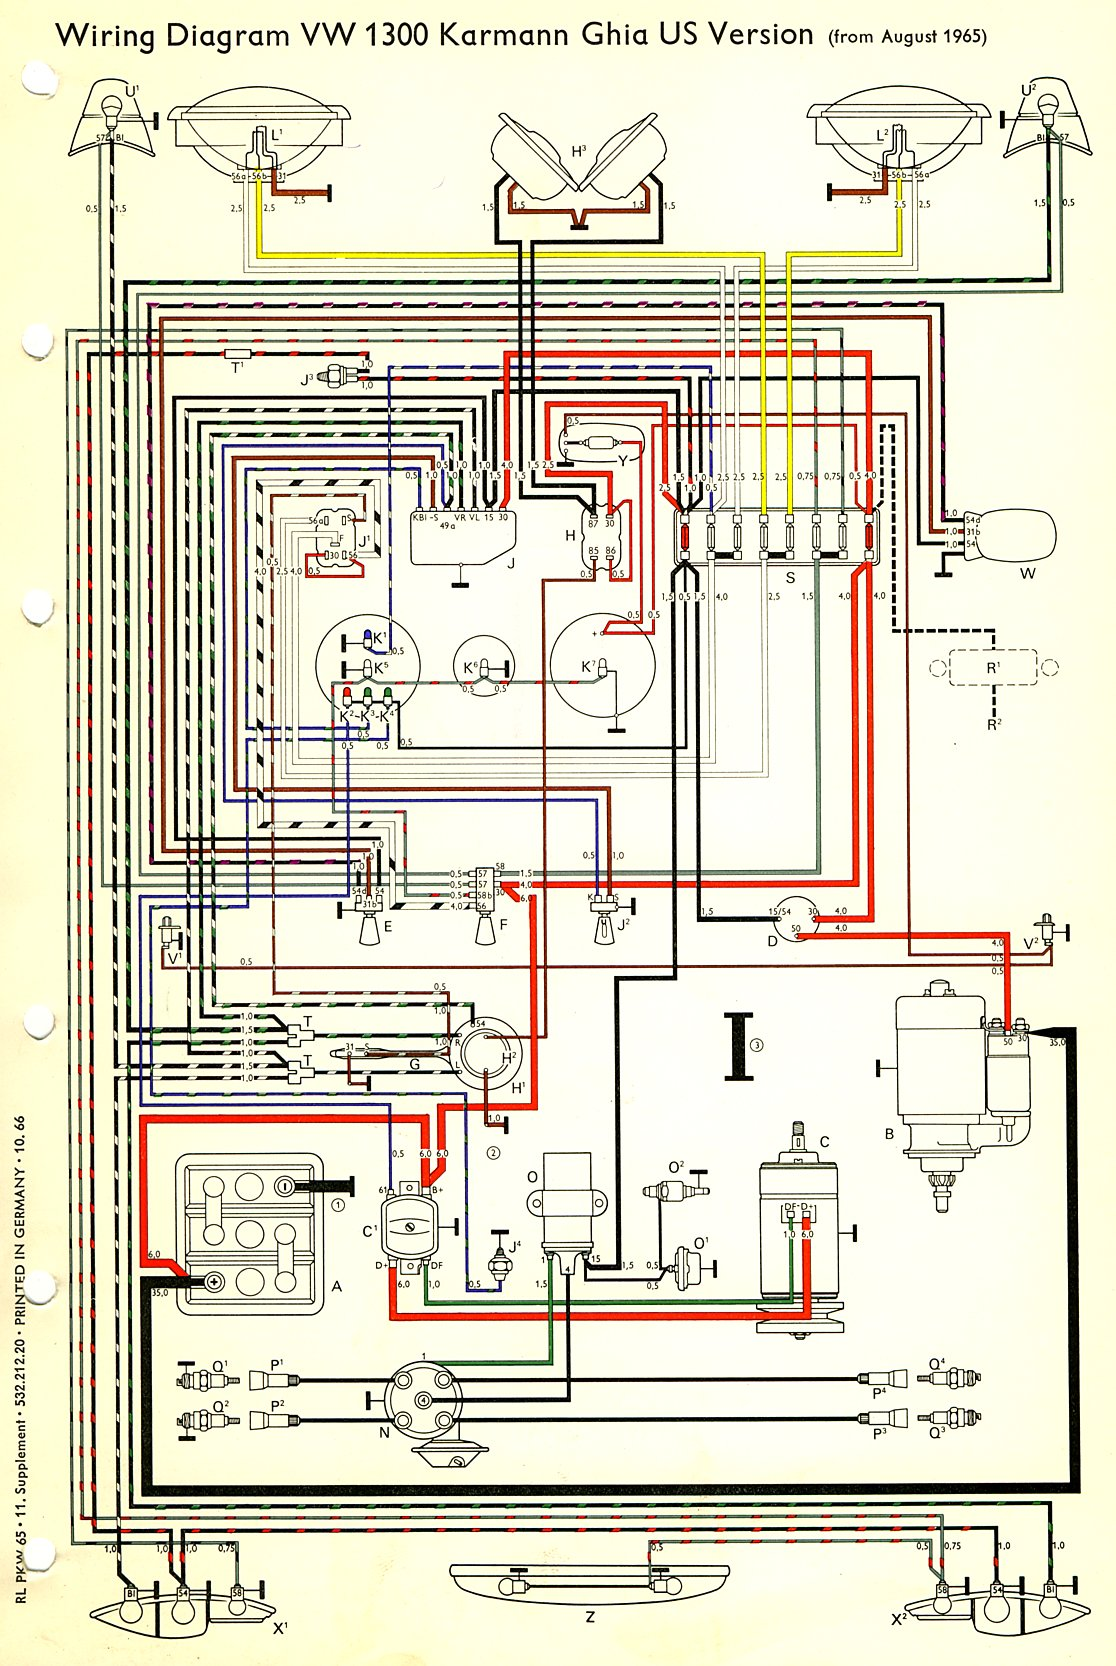 Karmann Ghia Wiring Diagrams Electrical Drawing Circuit